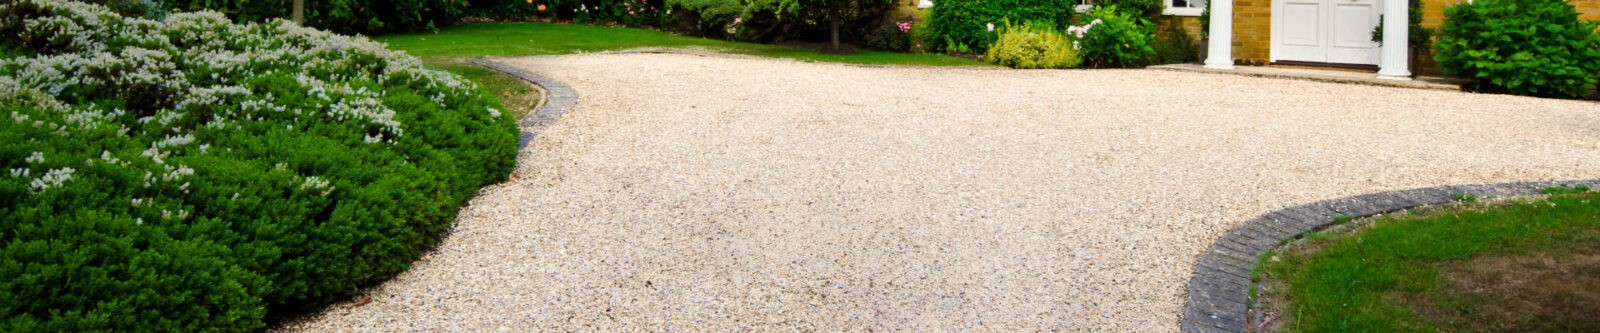 Gravel Driveways in Lancashire